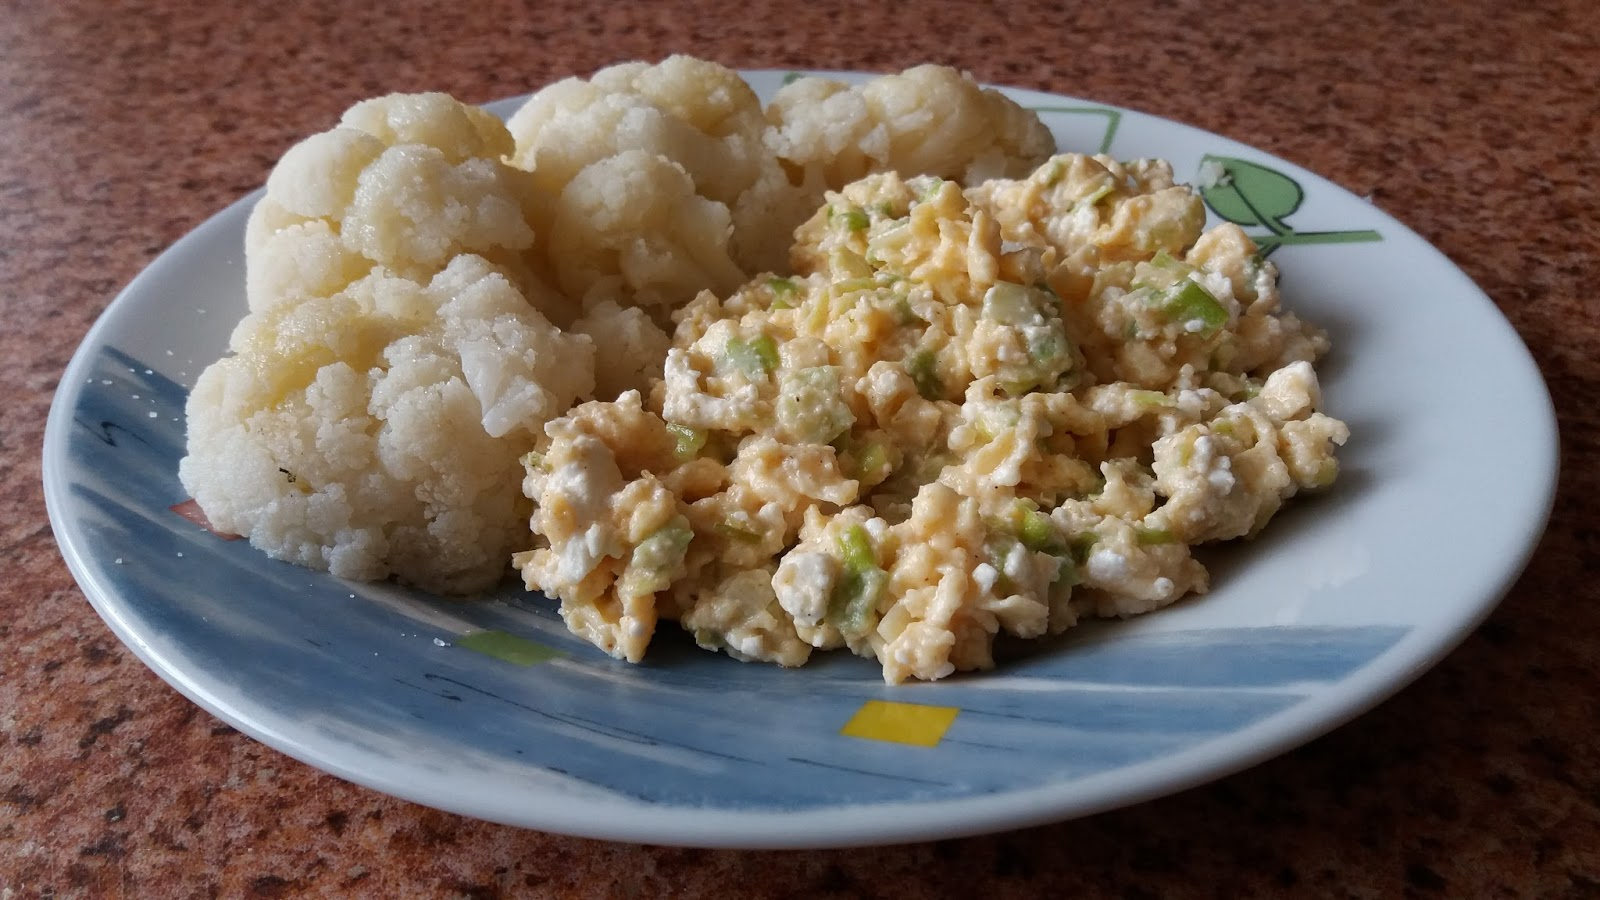 SCRAMBLED EGGS WITH LEEK AND CAULIFLOWER IN AN OVEN